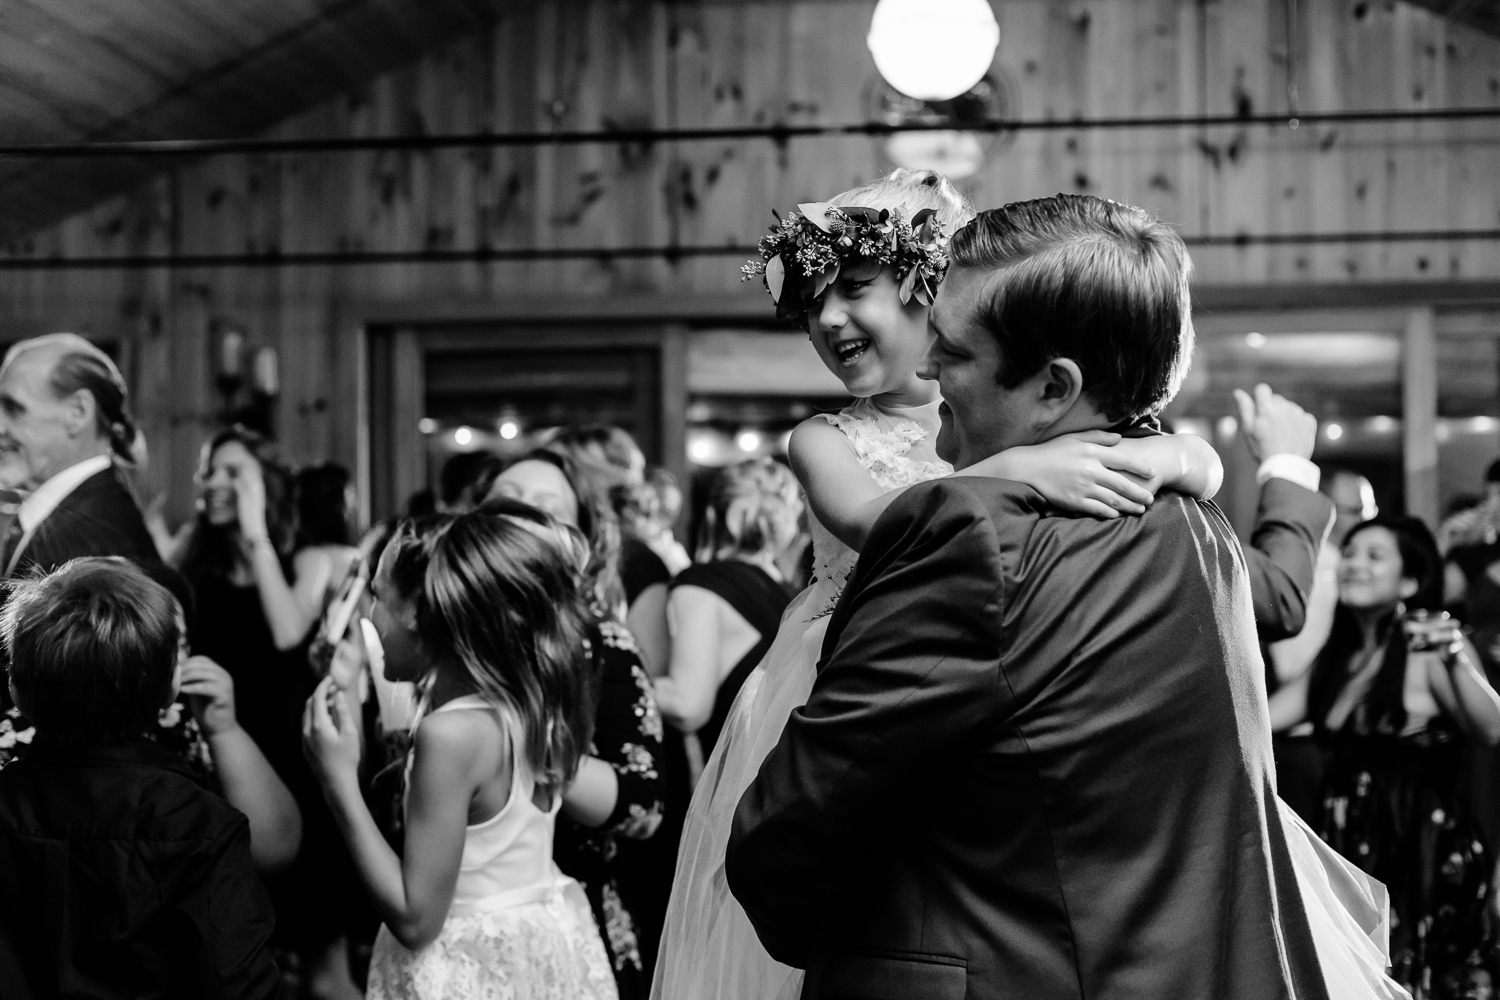 Black and white image of groom dancing with flower girl at a wedding reception.